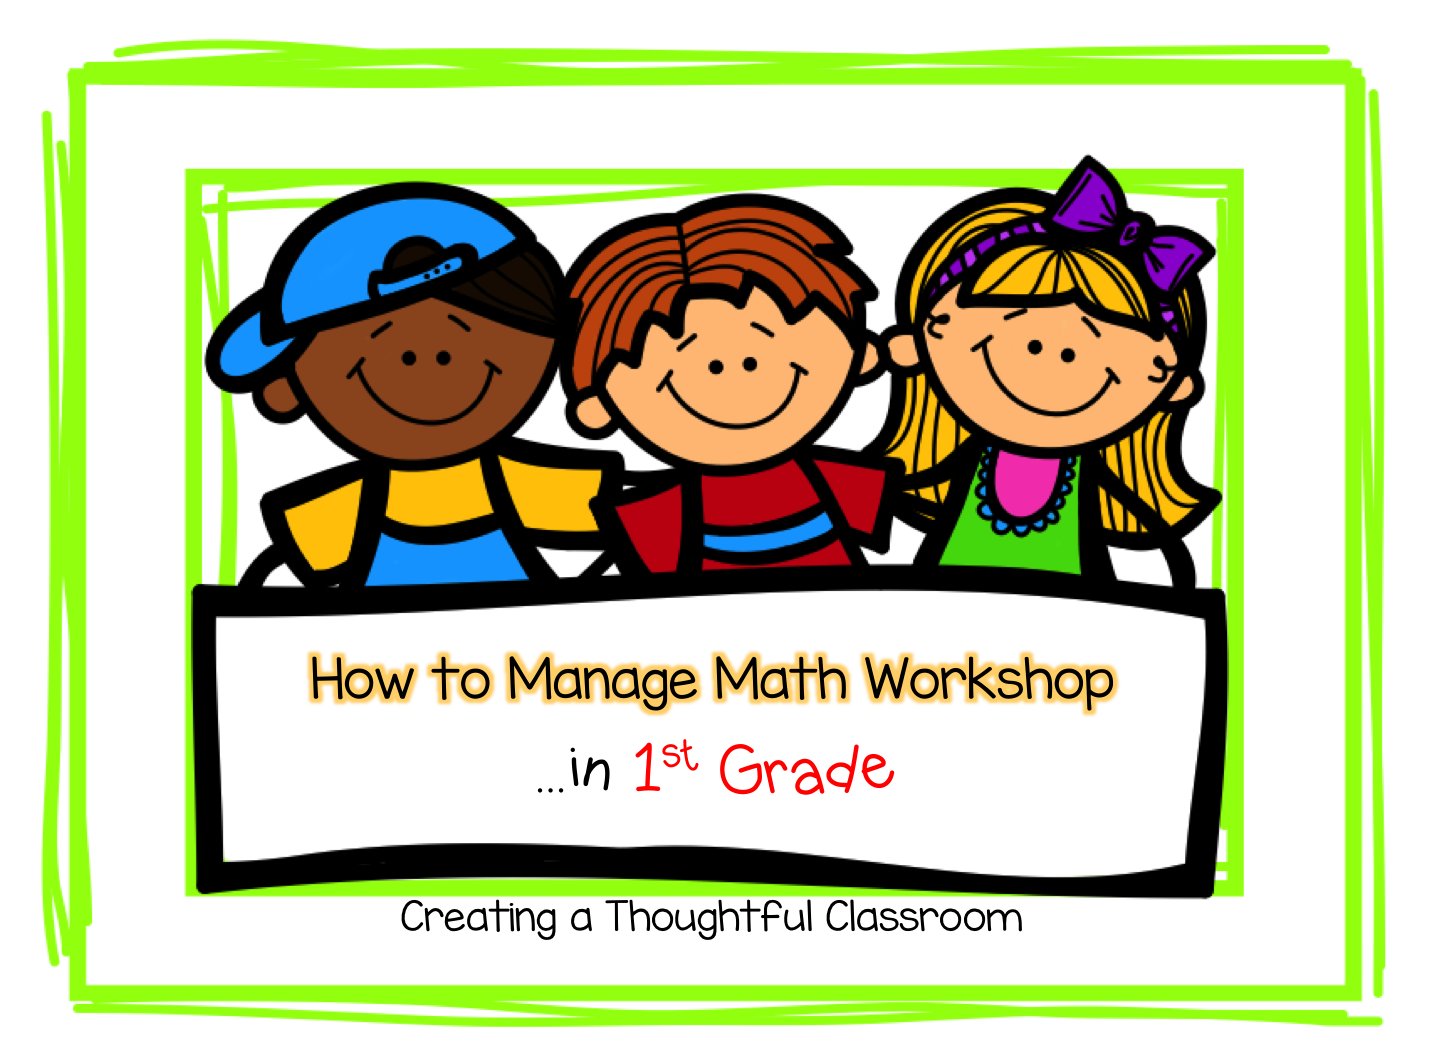 Schedule clipart reading workshop. How to manage math